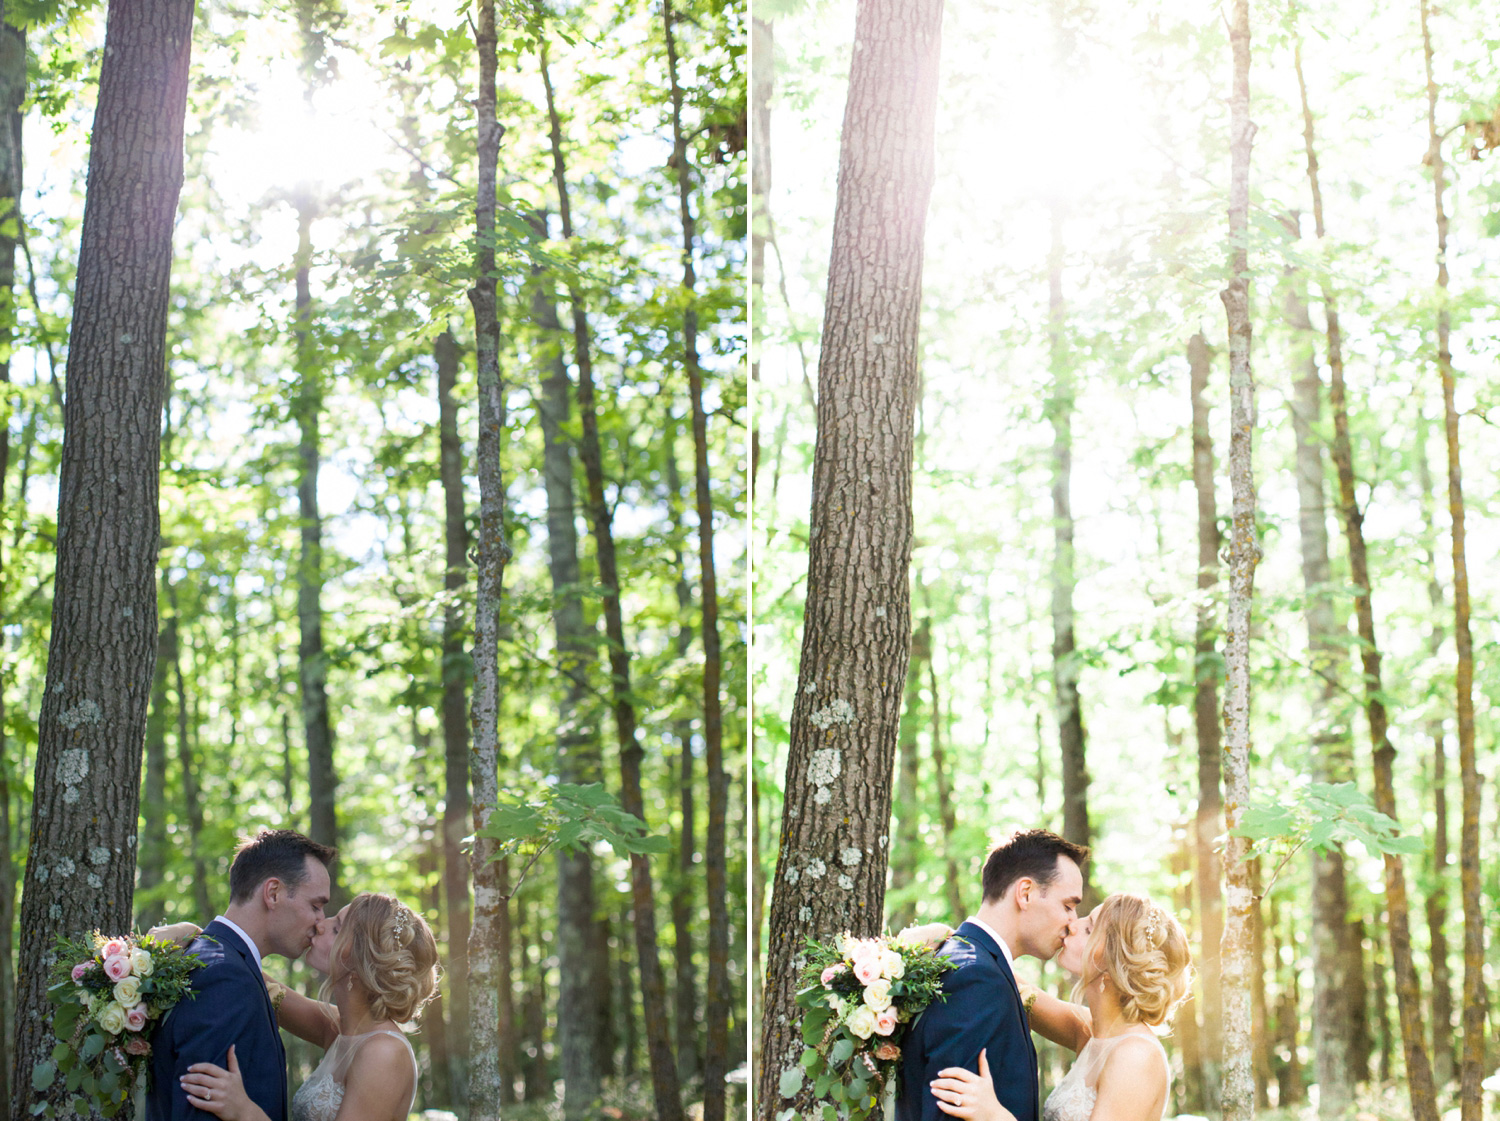 This is one of my very favorite images ever. I love the backdrop of the woods, the romantic light and the stealing of a kiss. However, I needed to brighten my subjects a bit, make the overall color tone slightly warmer, and increase the presence of the sunlight coming through the trees - giving the image a more etherial feel.